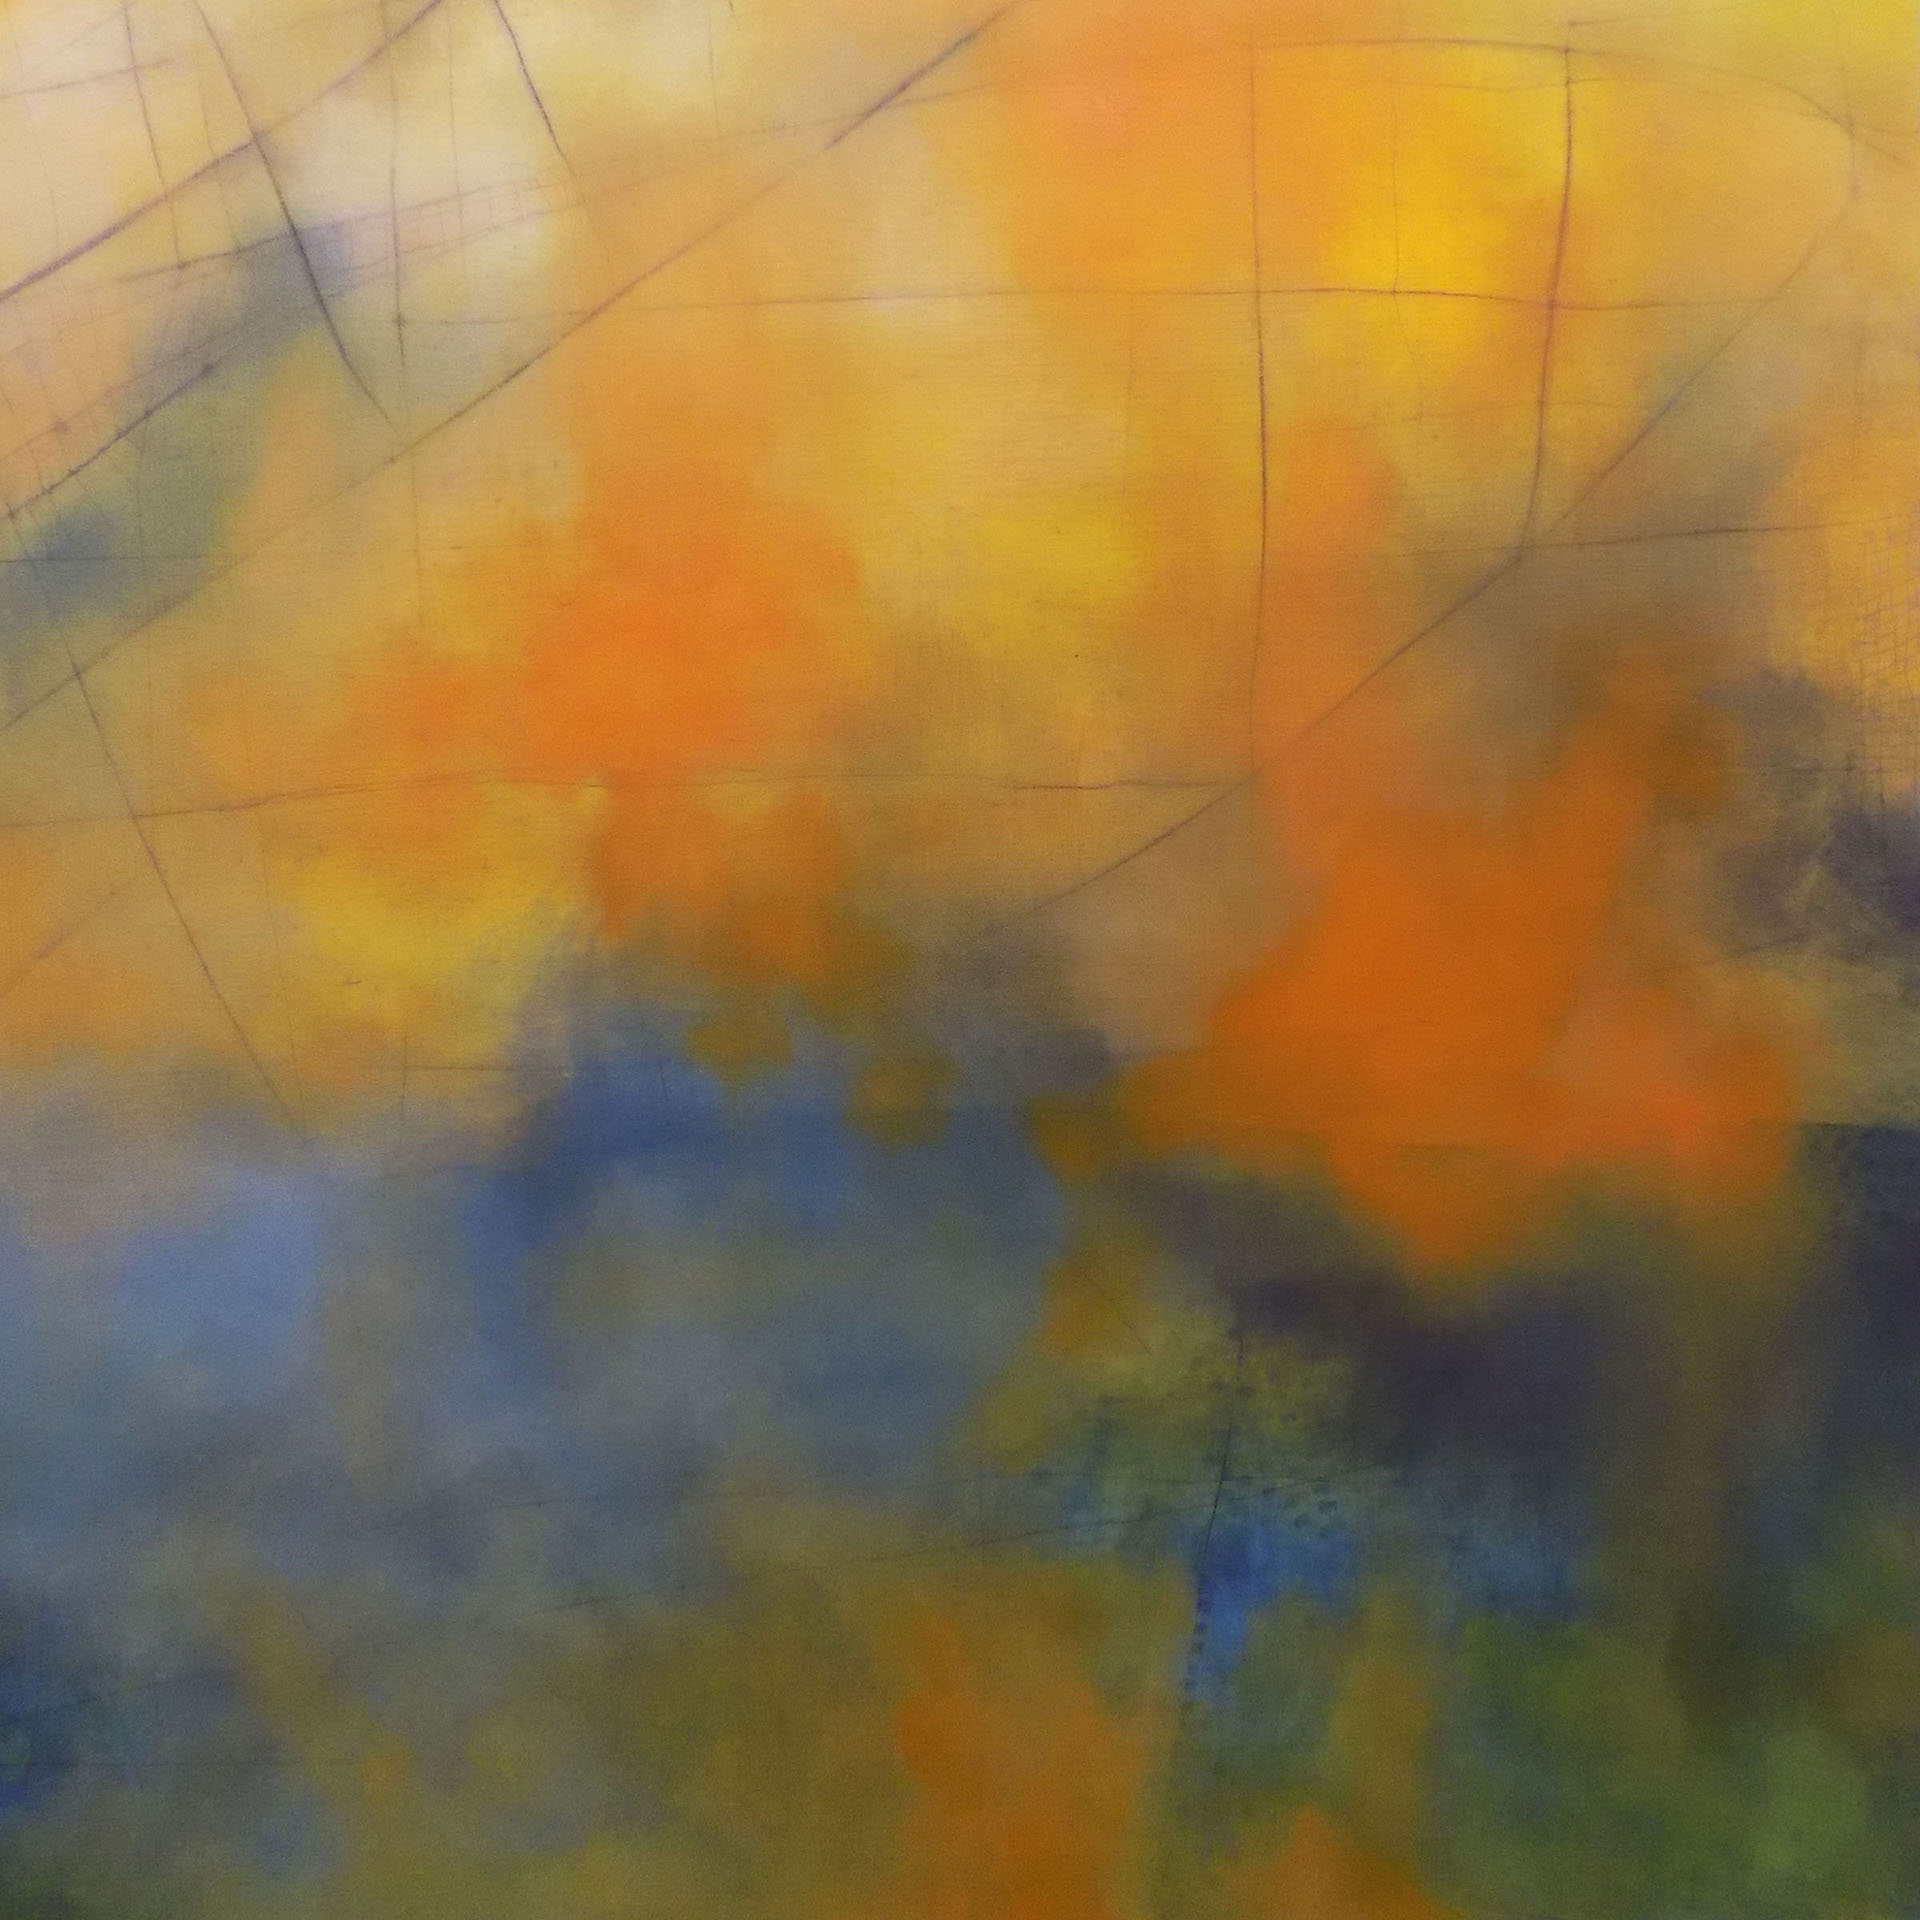 Droge.Michel_Water over The Bridge) 5ft x 5ft (1).jpg